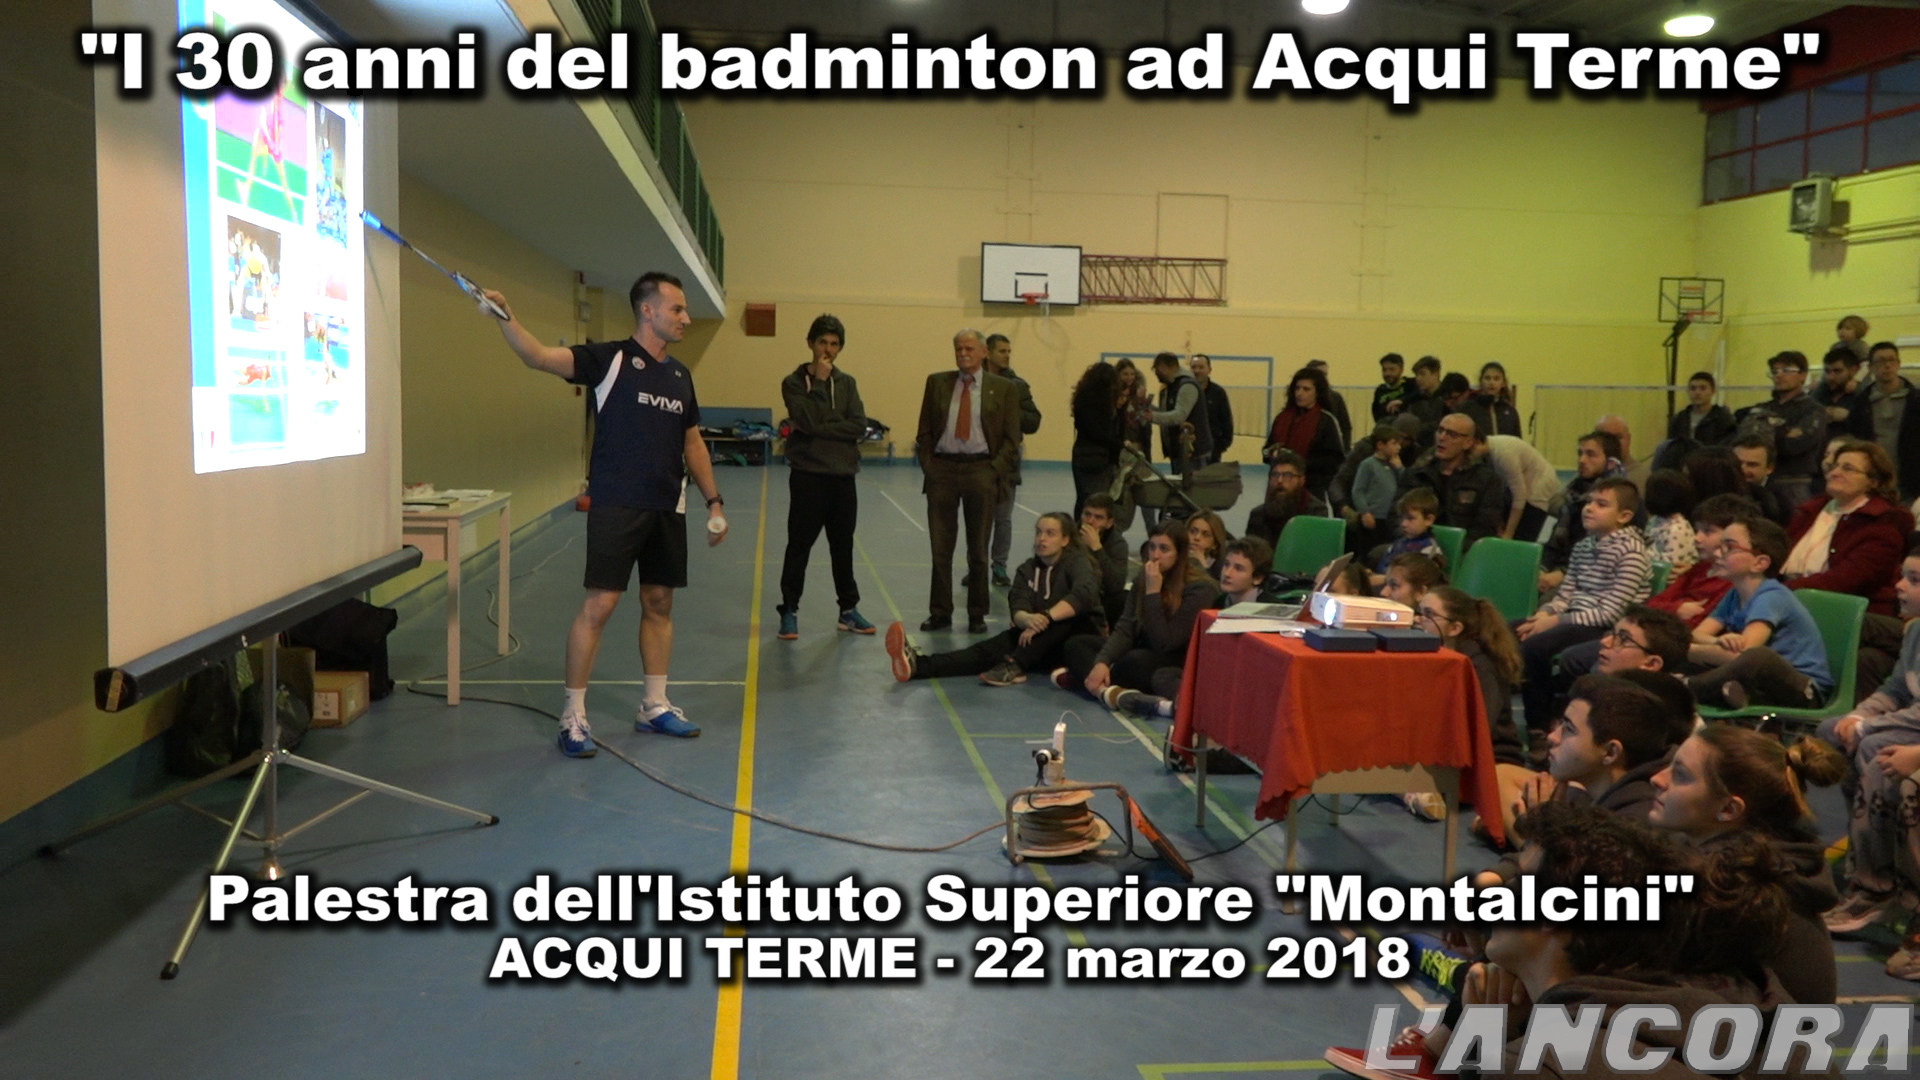 I 30 anni del badminton ad Acqui Terme (VIDEO)